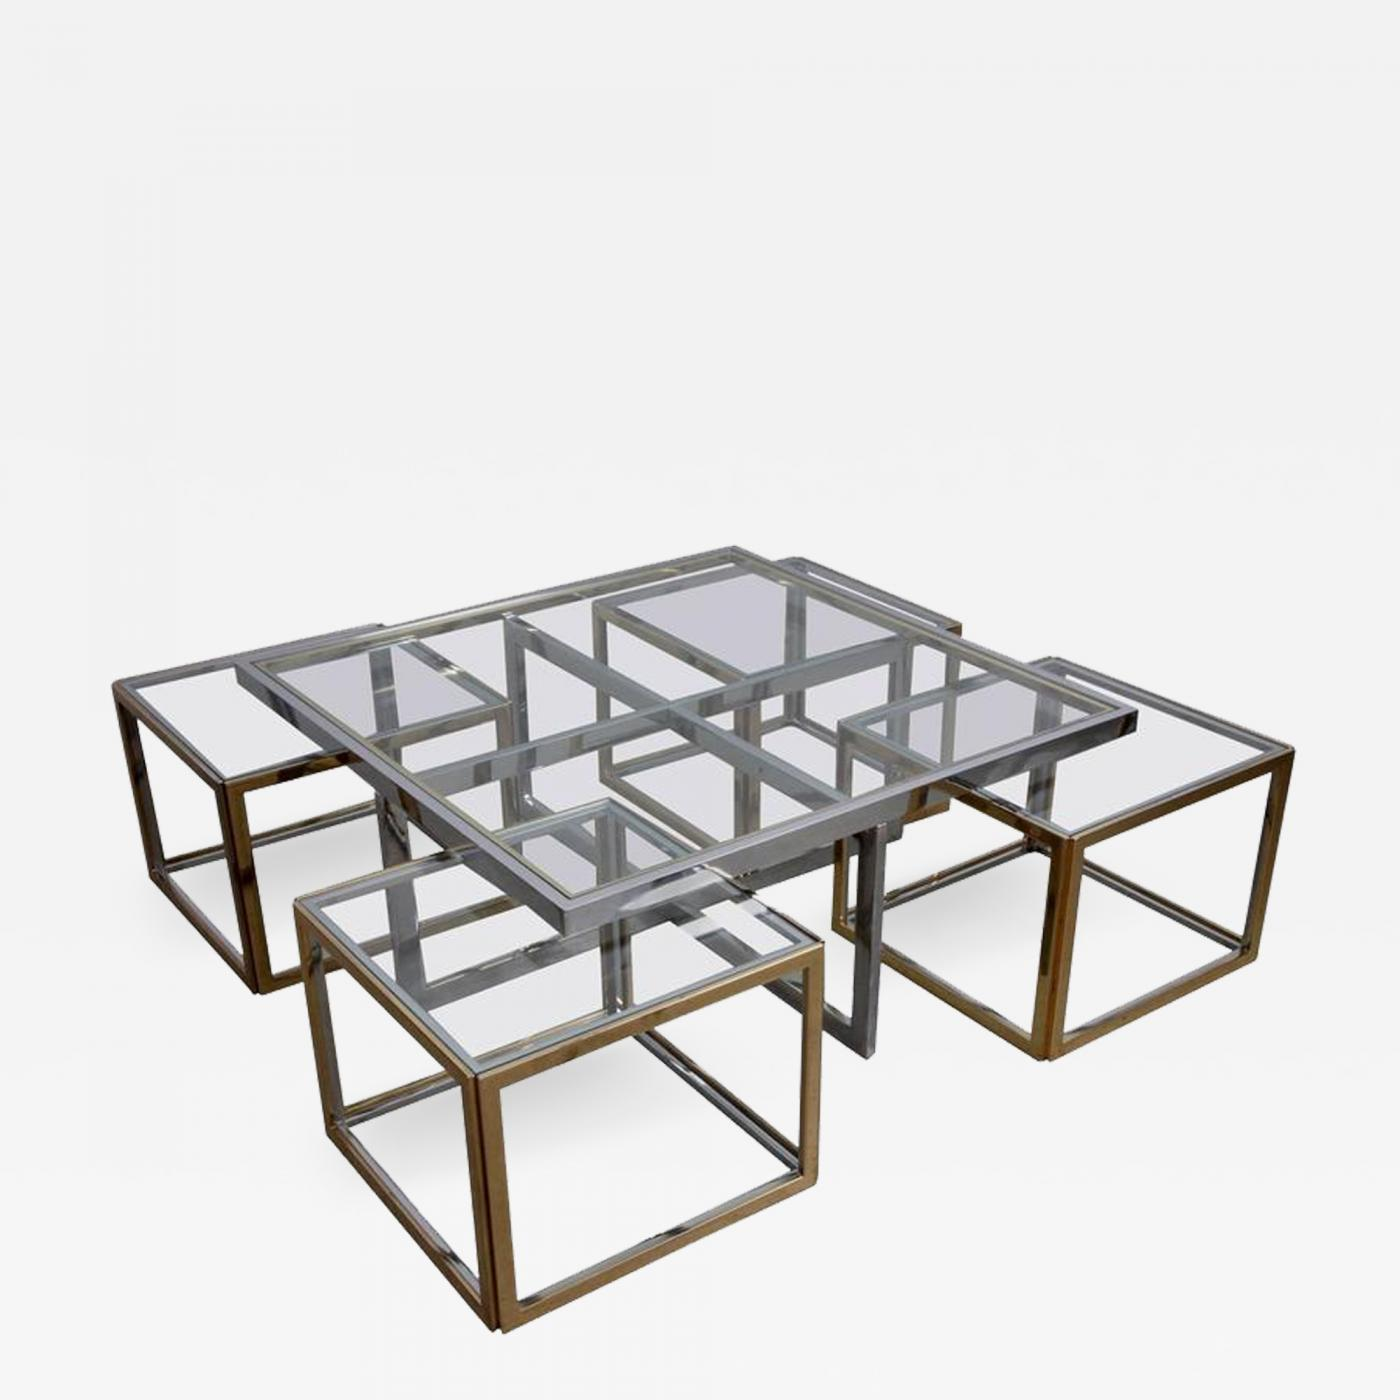 Admirable Maison Charles Huge Coffee Table In Brass And Chrome With Four Nesting Tables By Maison Charles Creativecarmelina Interior Chair Design Creativecarmelinacom